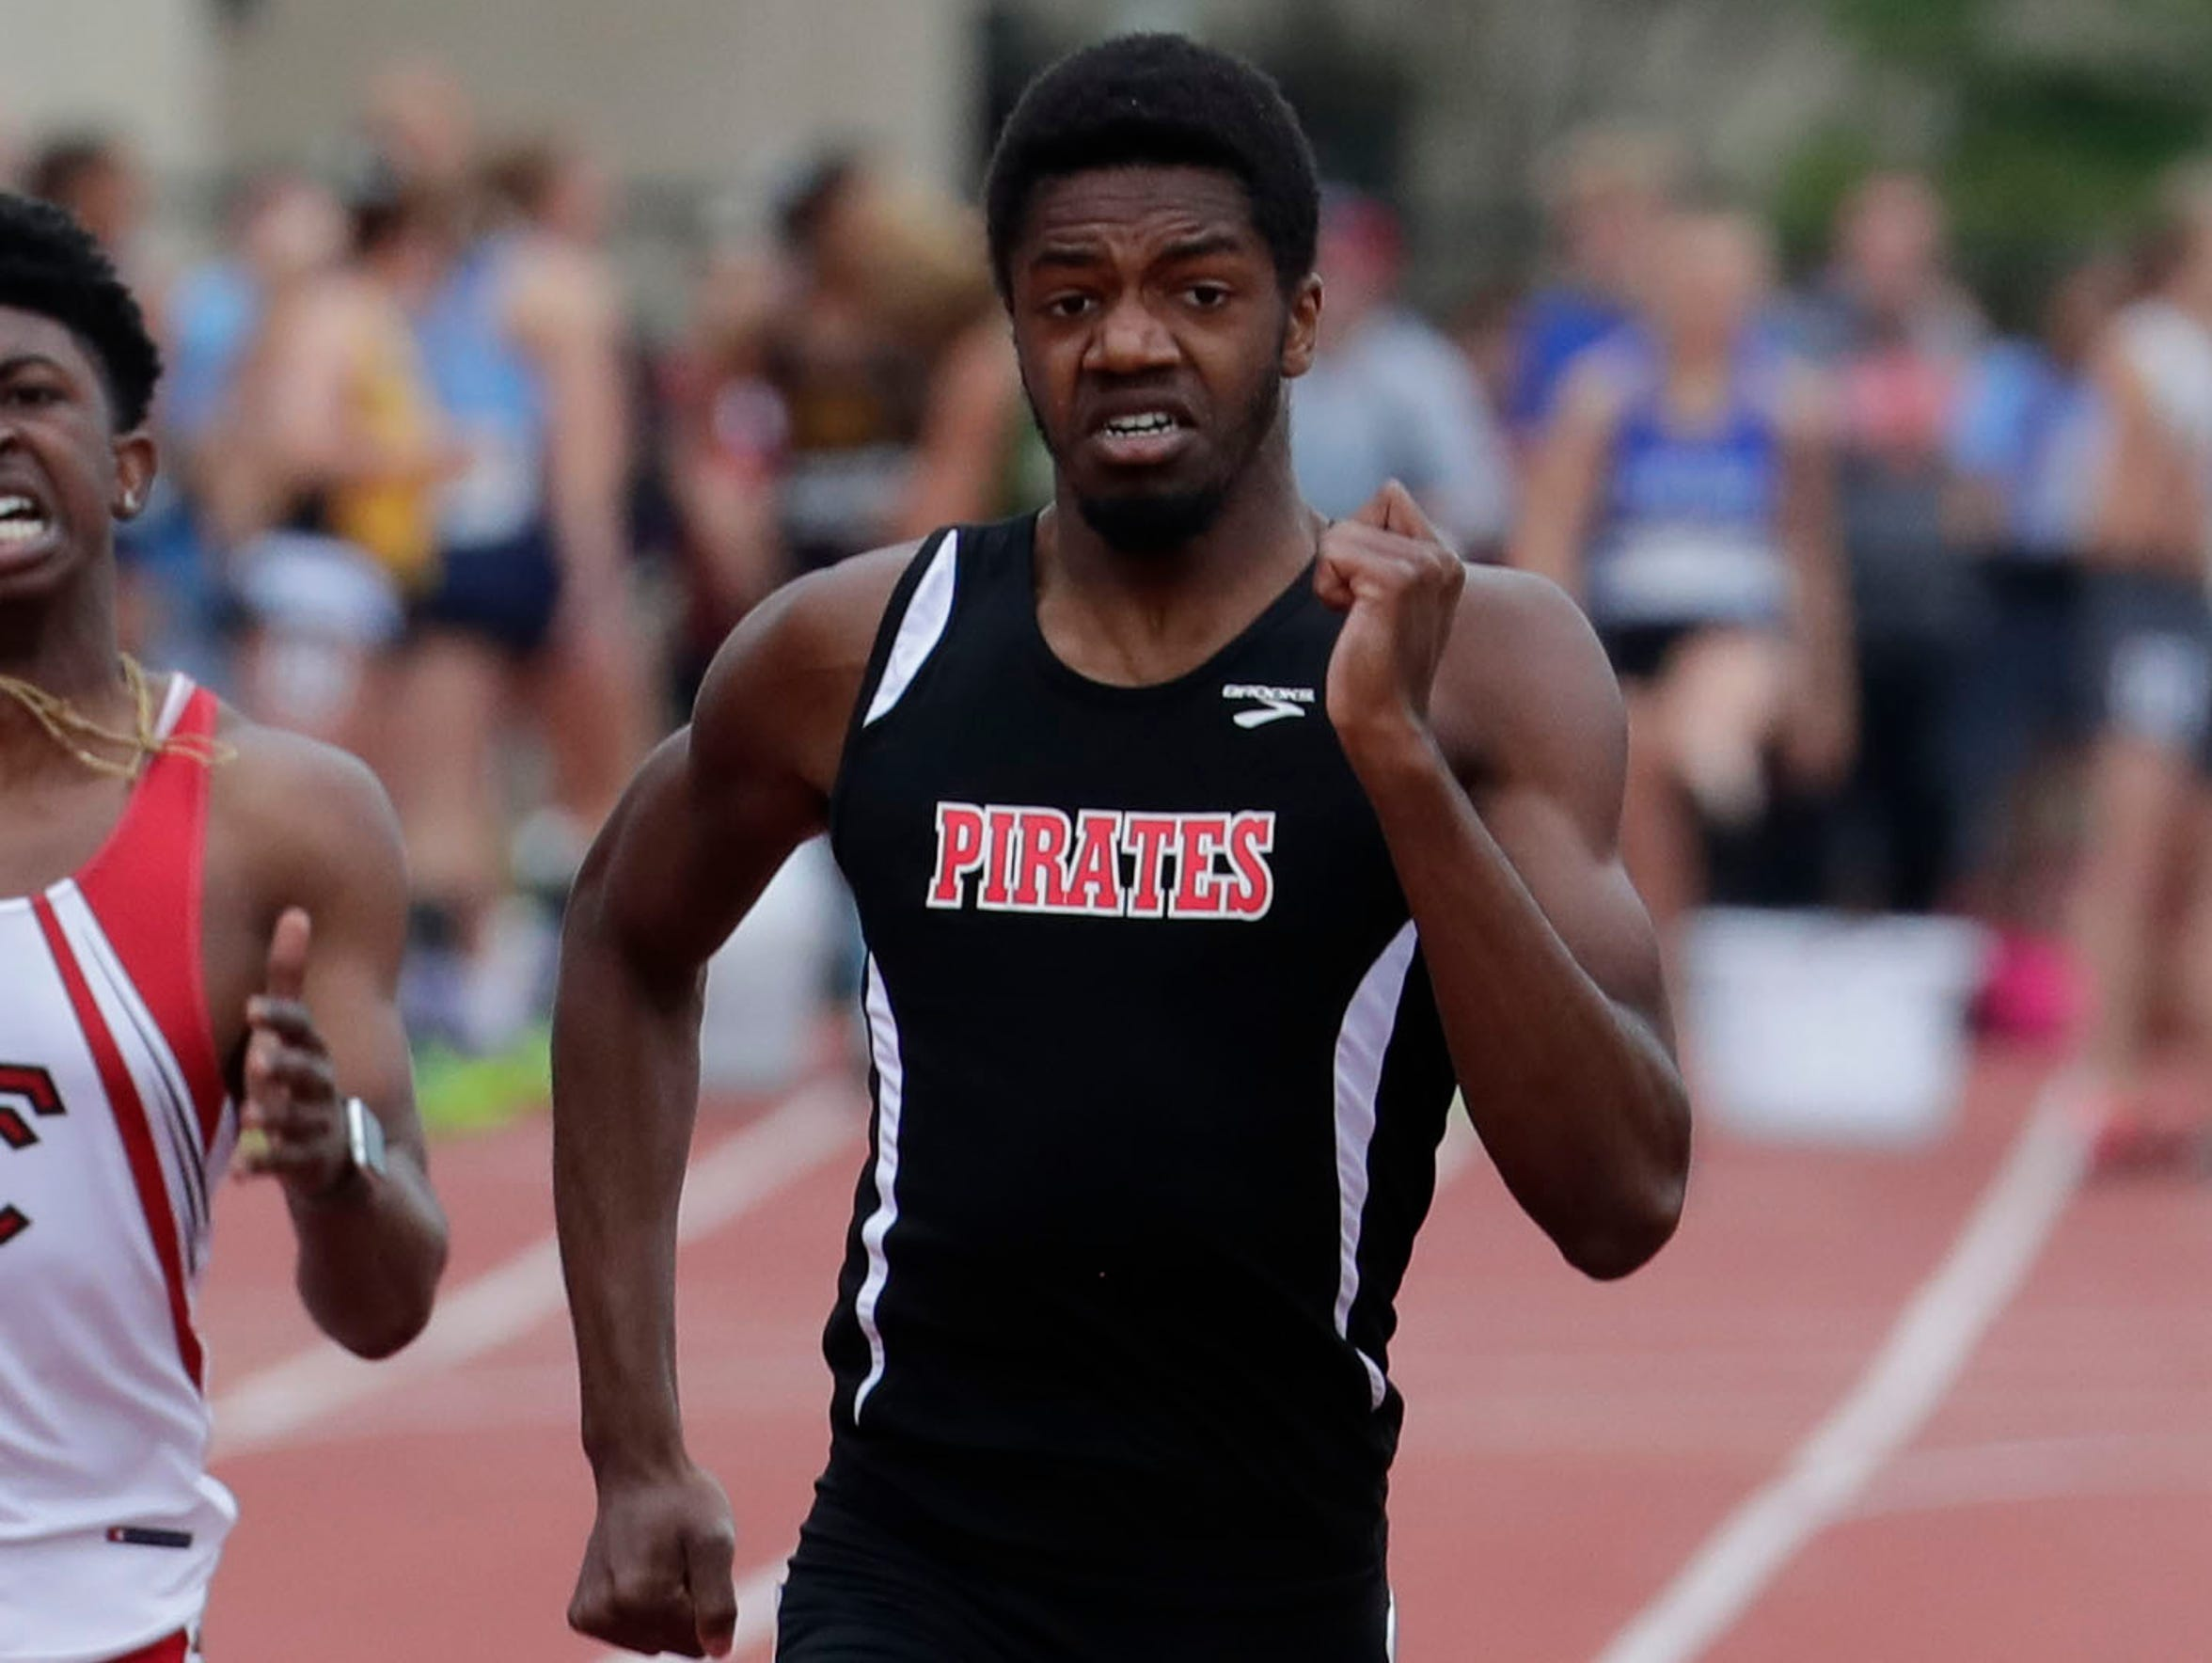 David Young of Pewaukee finishes second in the boys Division 1 400 meters at the WIAA state track and field meet.